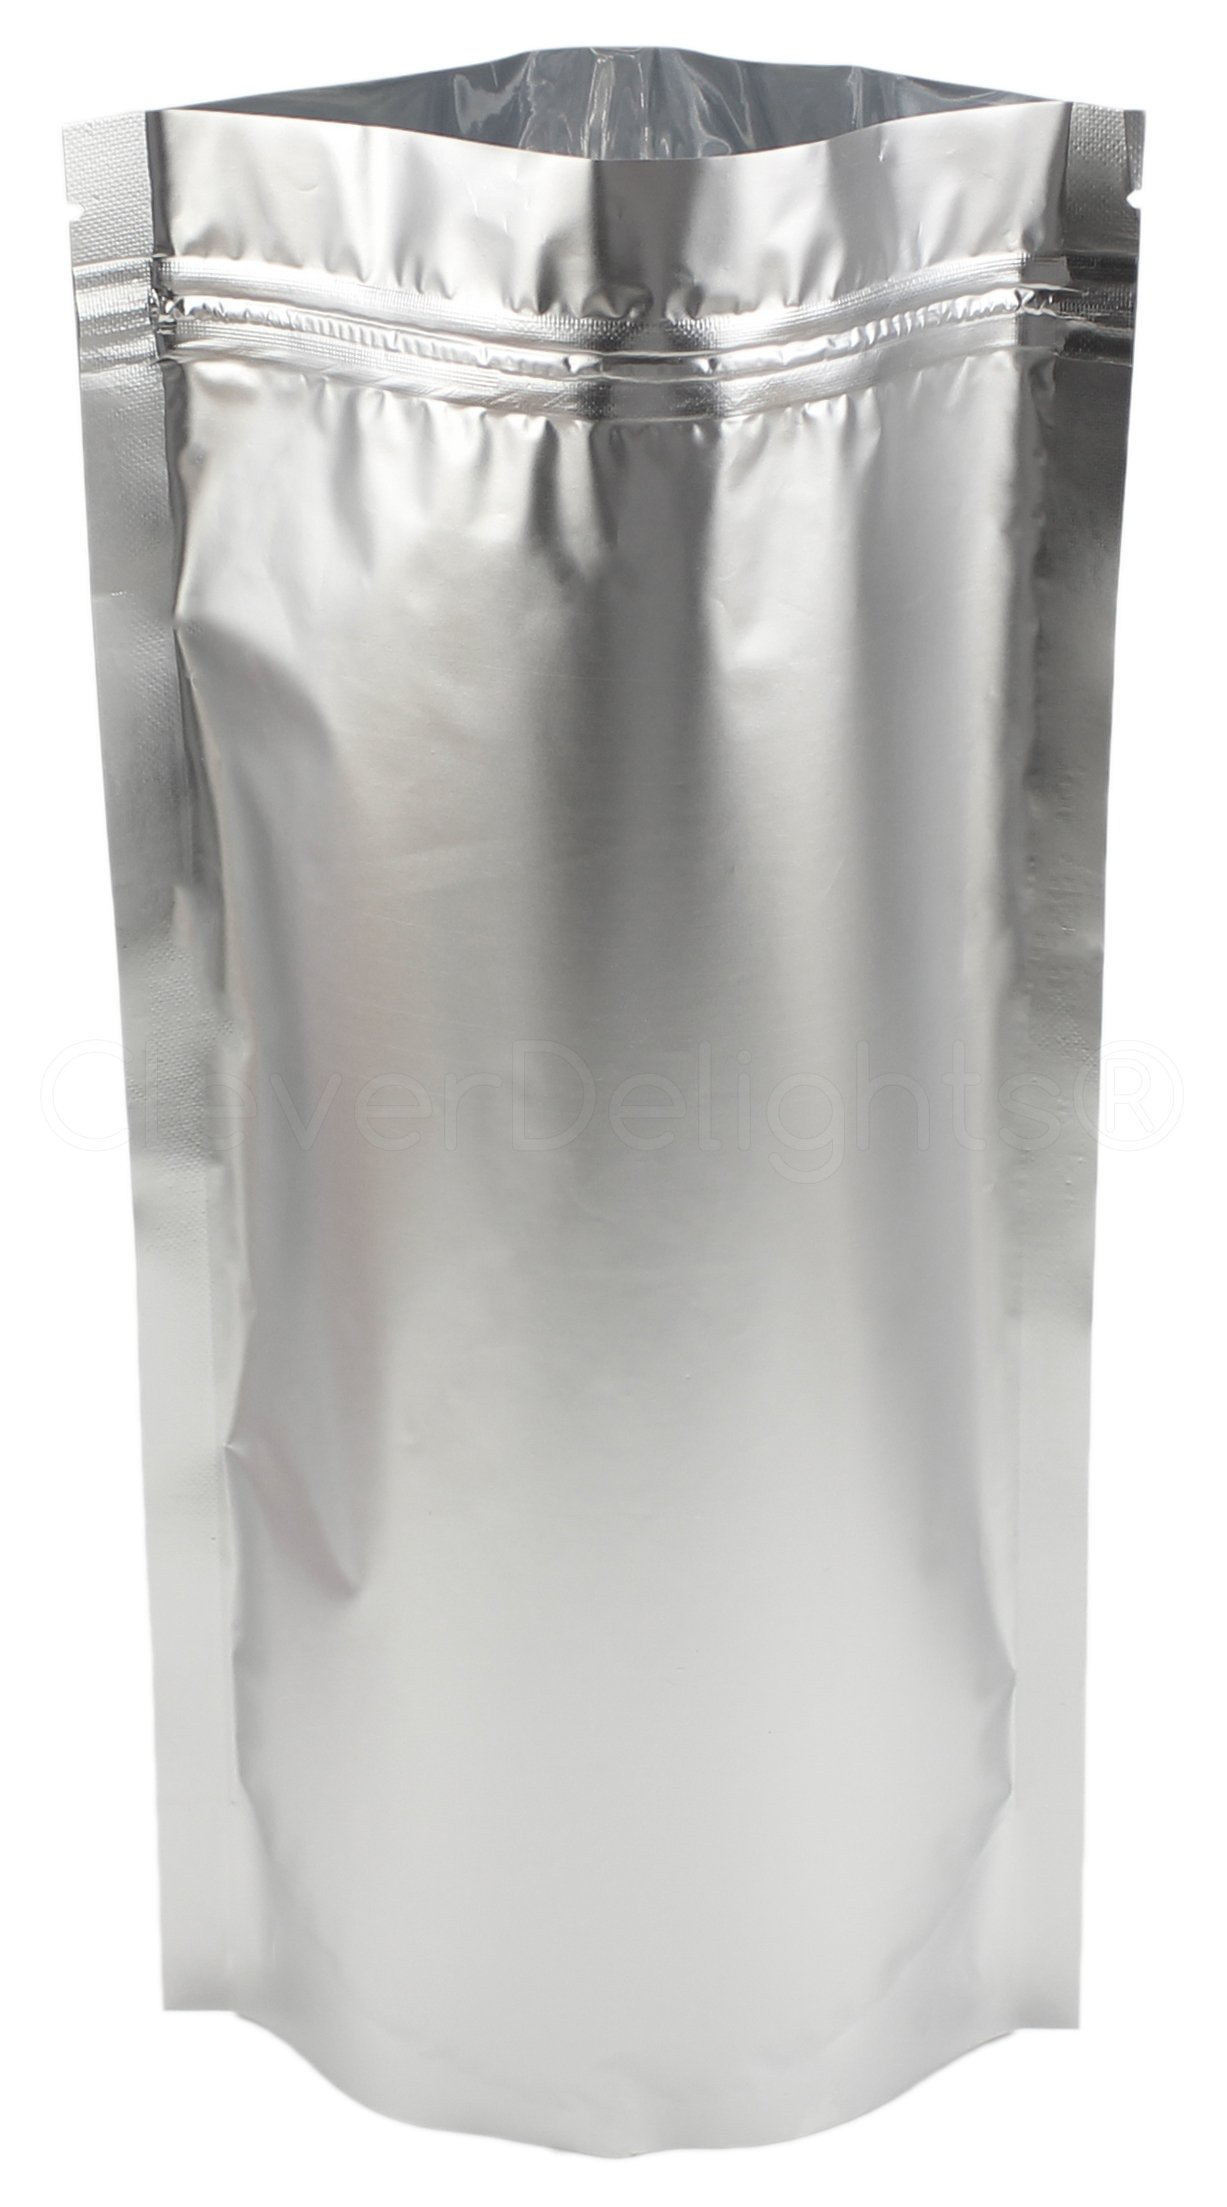 100 Pack - CleverDelights Silver Stand-Up Pouches - 7'' x 11.5'' x 4'' - 16oz - Resealable Ziplock Bag